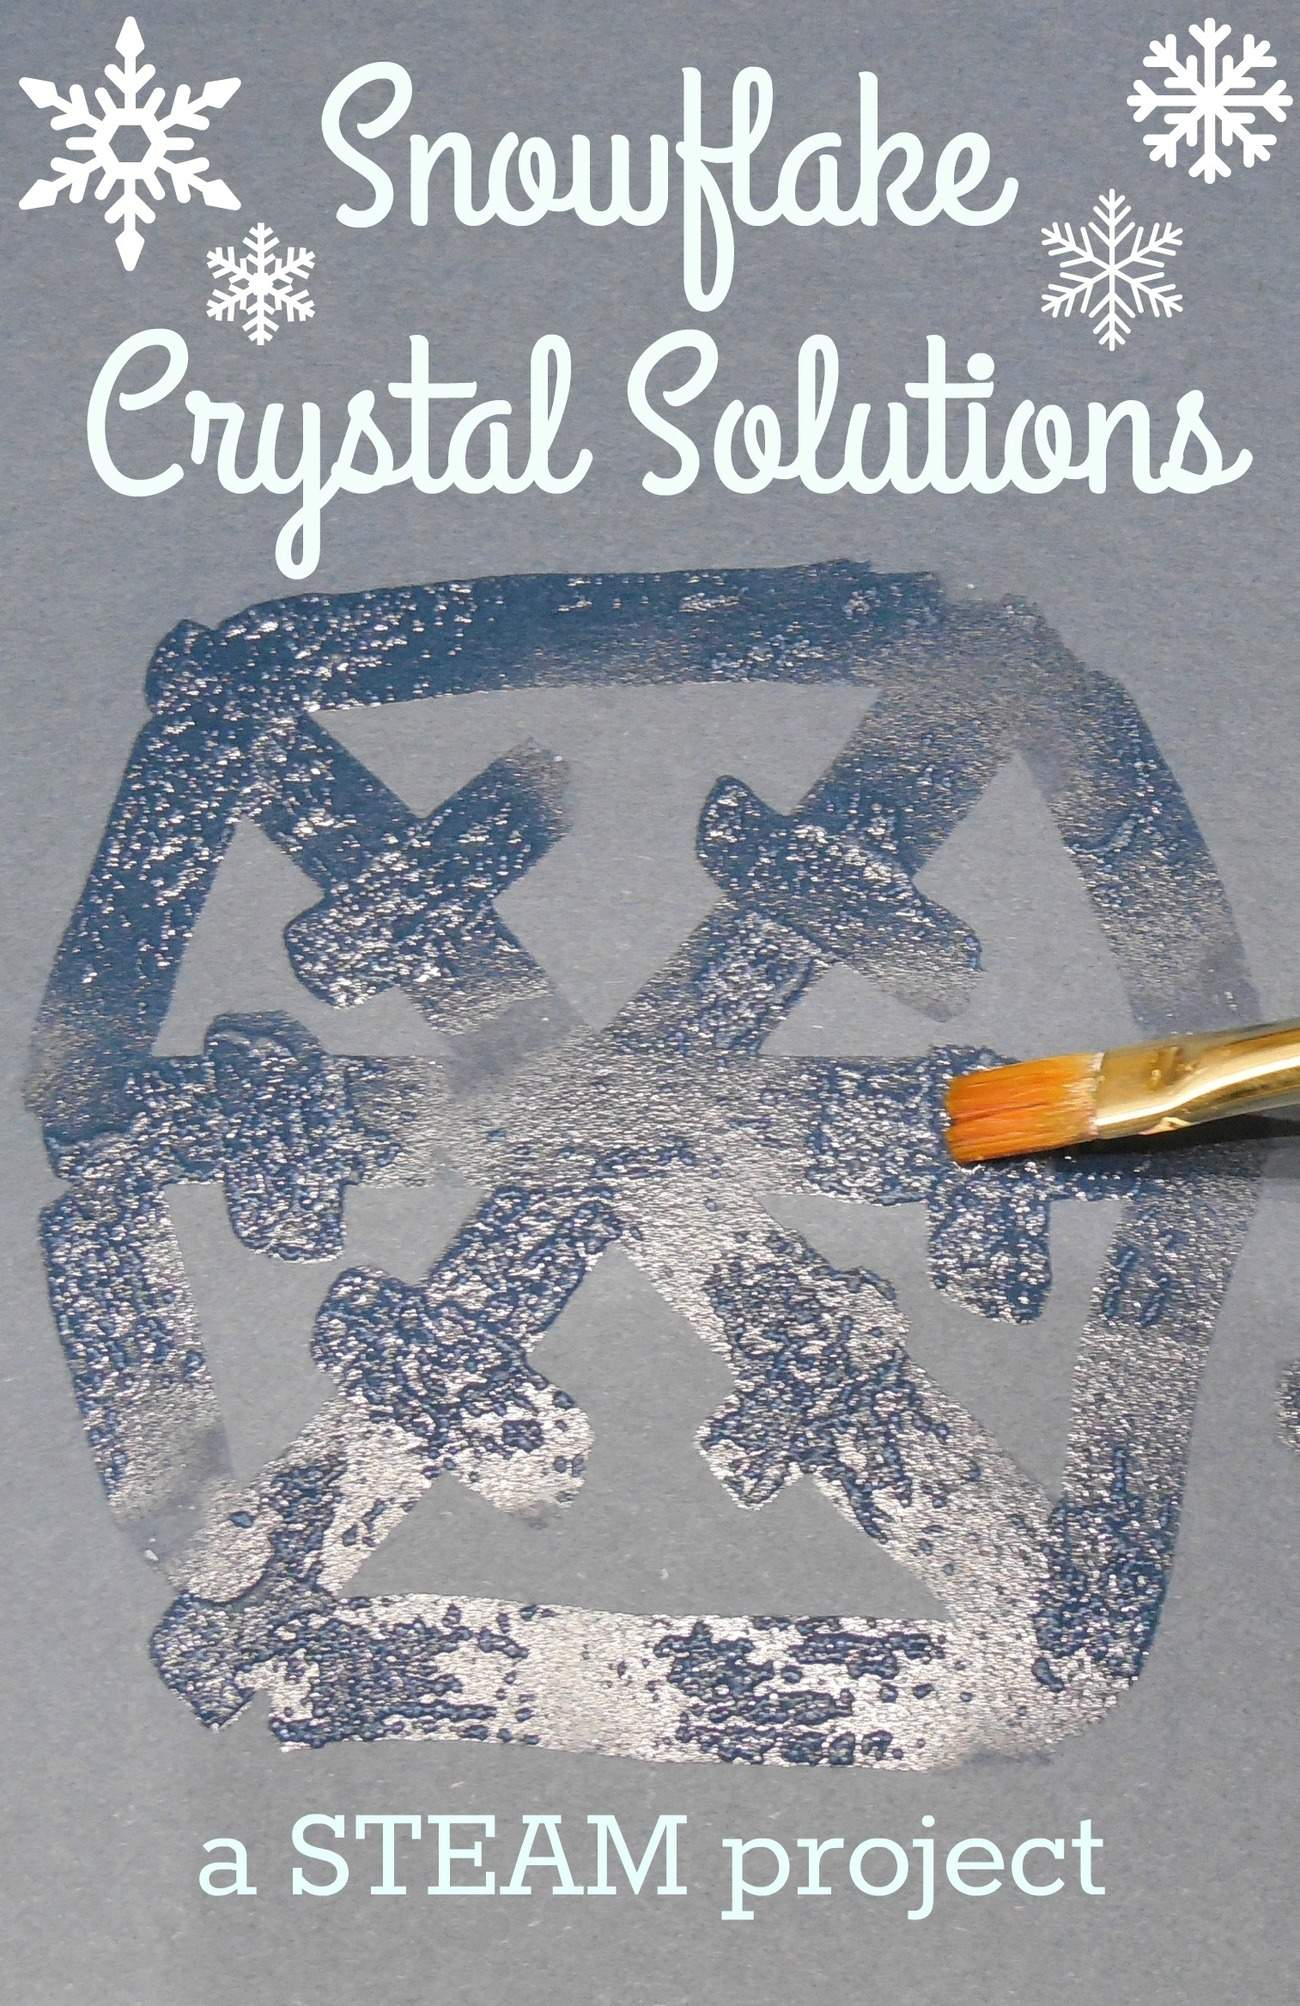 Snowflake Crystal Solutions: A STEAM Project